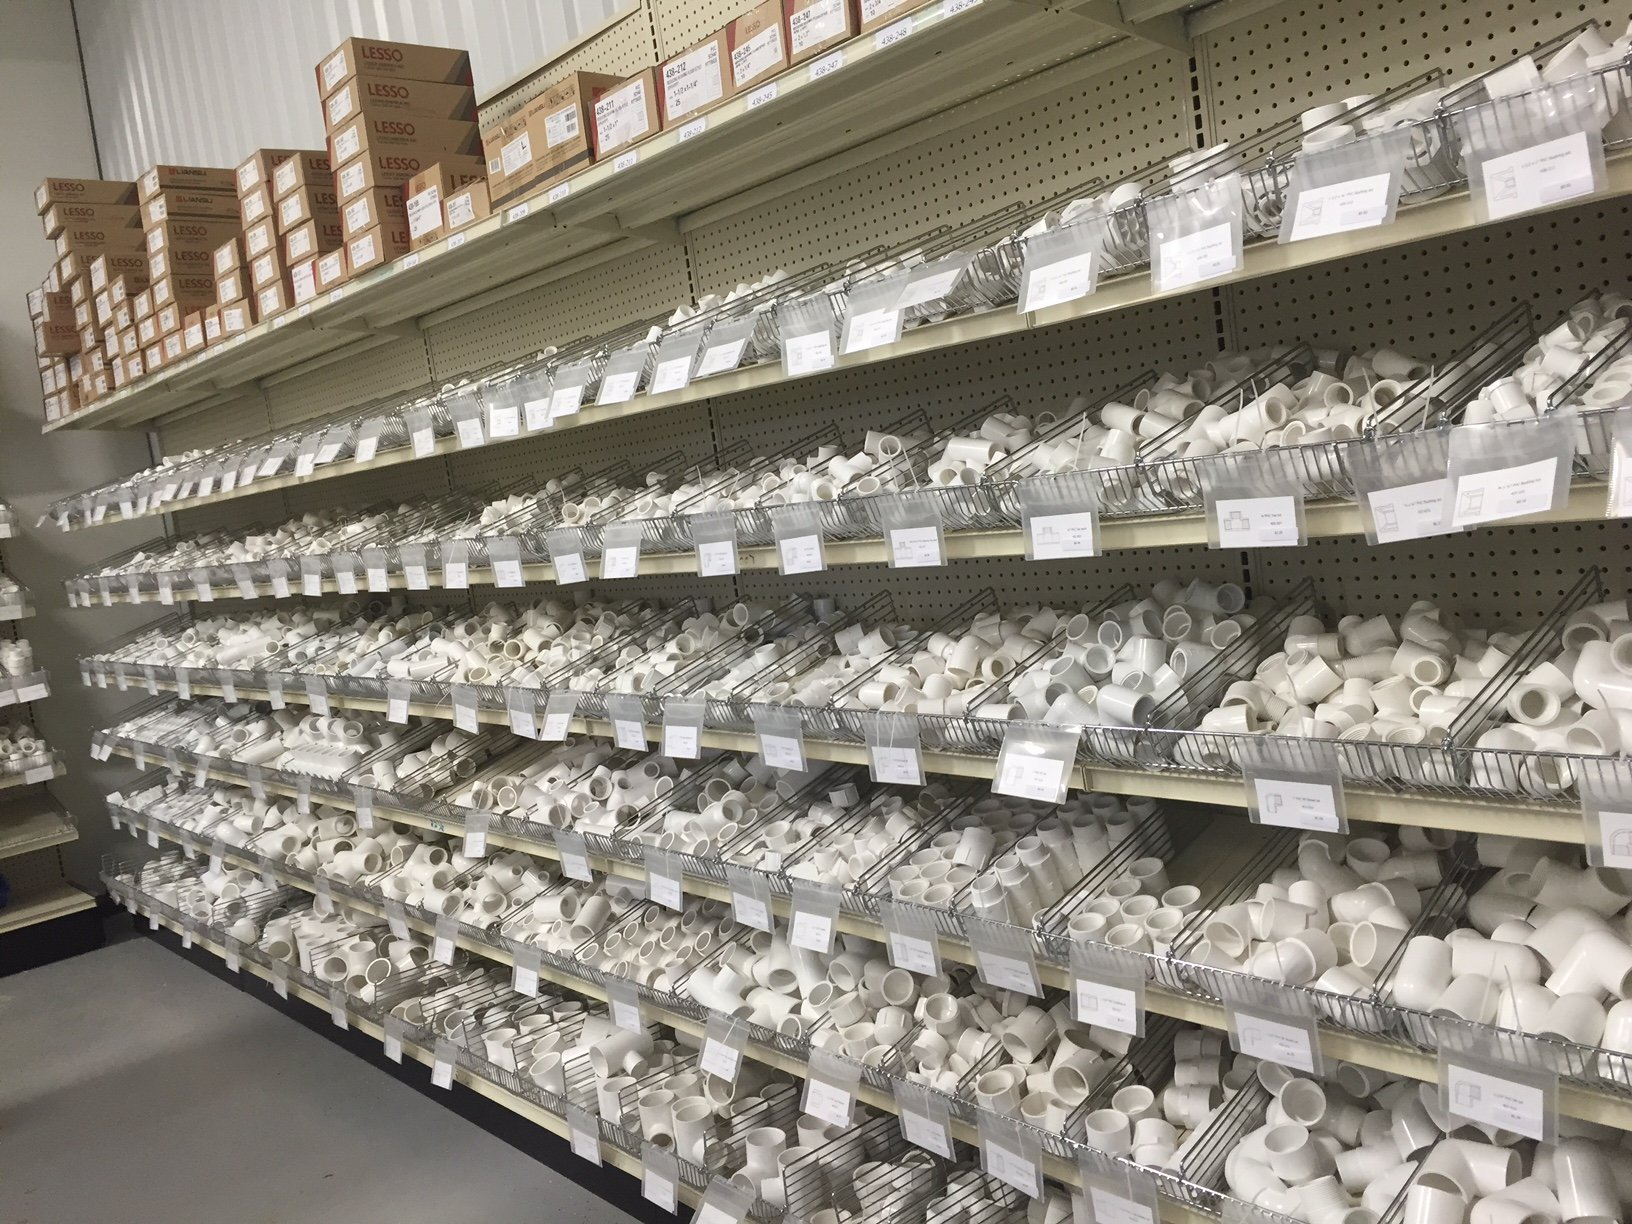 Pipe Fittings Pvc Pipe At Water Logistics Located In San